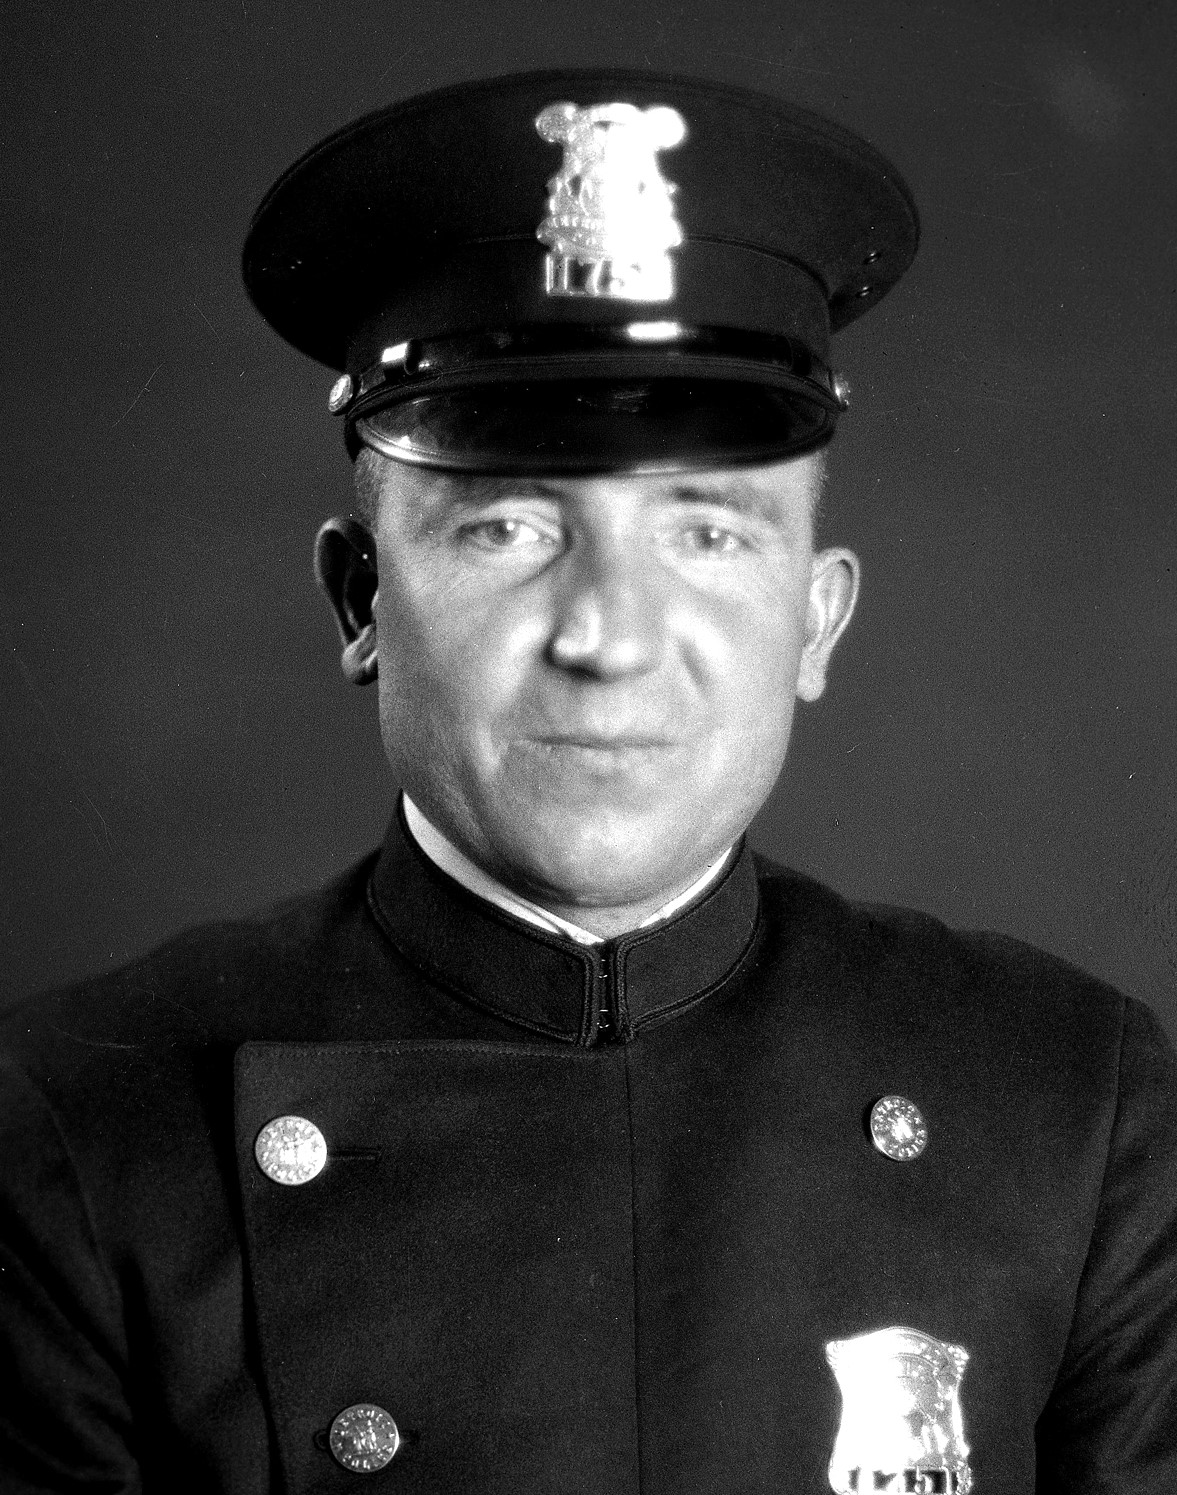 Police Officer Phelim McDonough | Detroit Police Department, Michigan